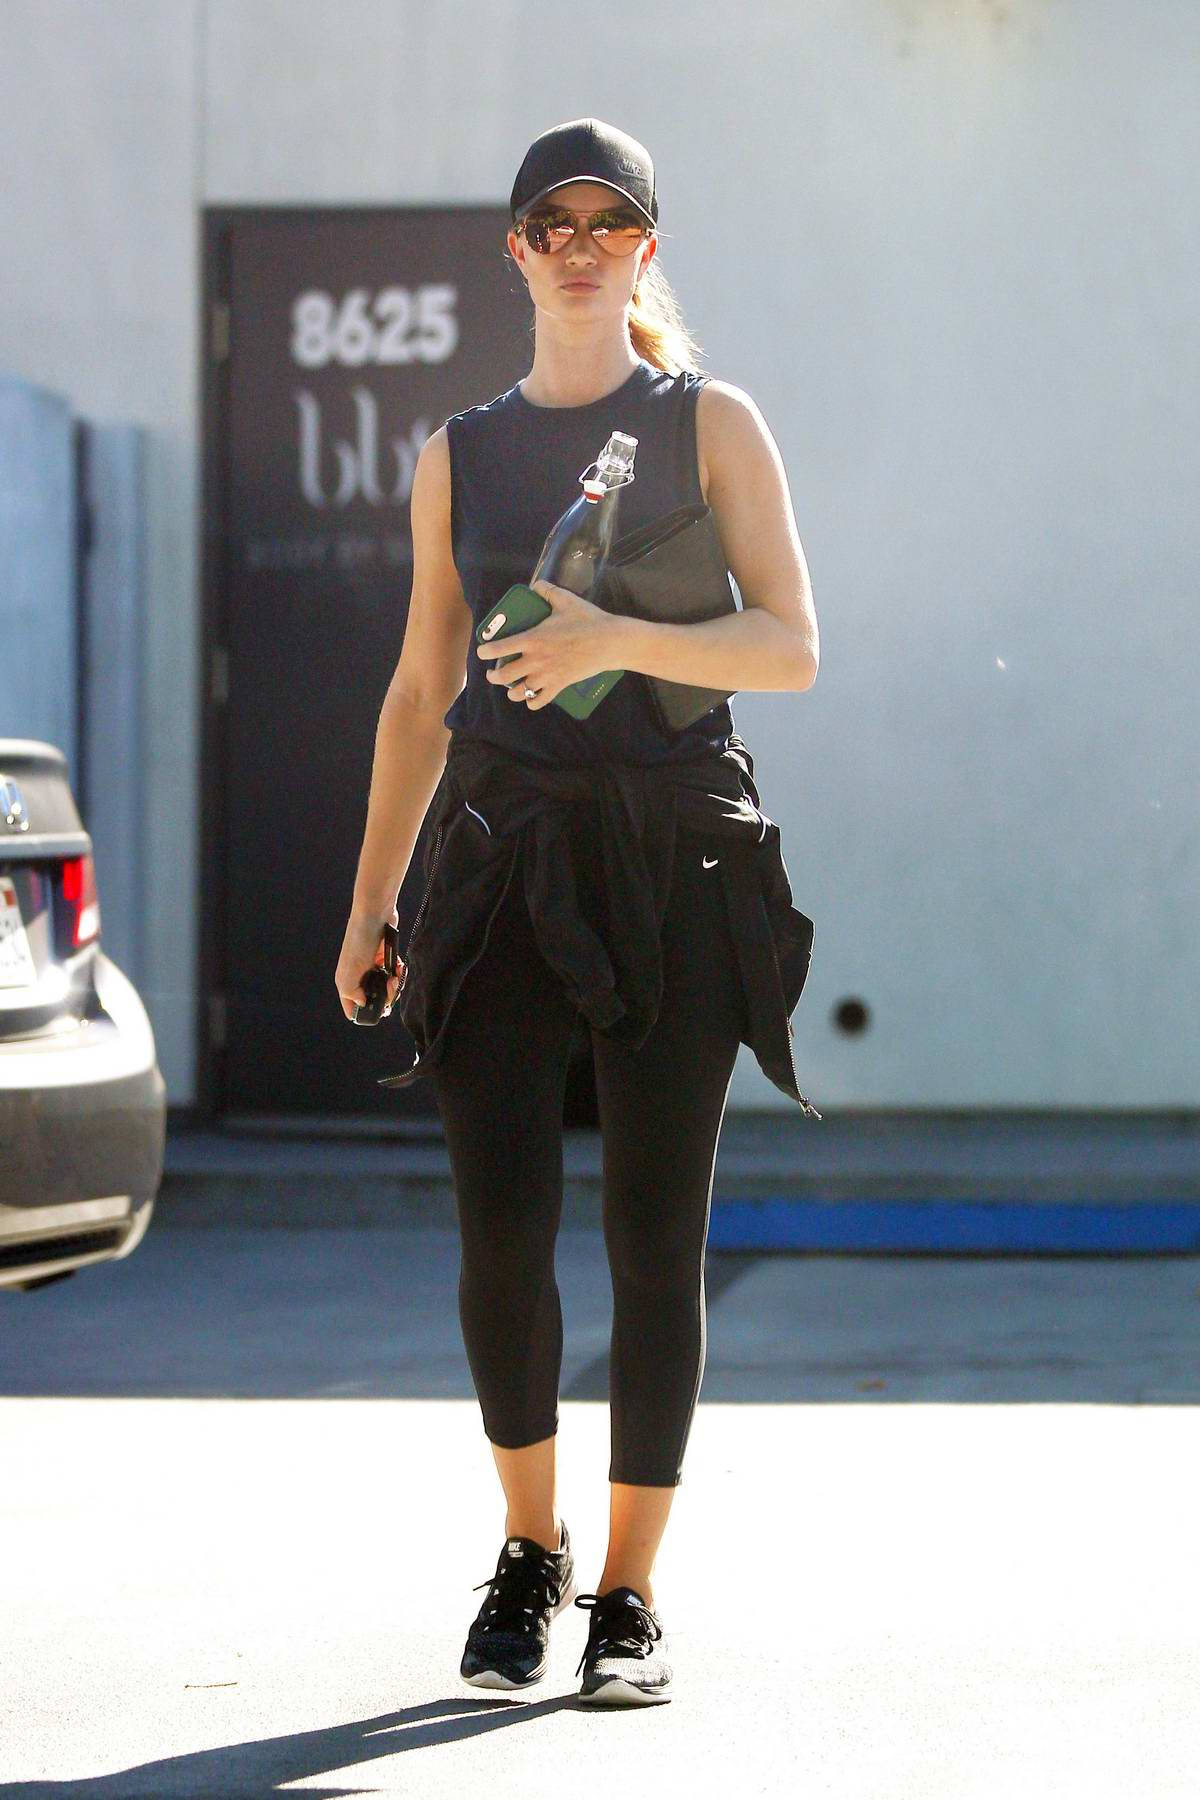 Rosie Huntington-Whiteley heading to the gym in West Hollywood, Los Angeles